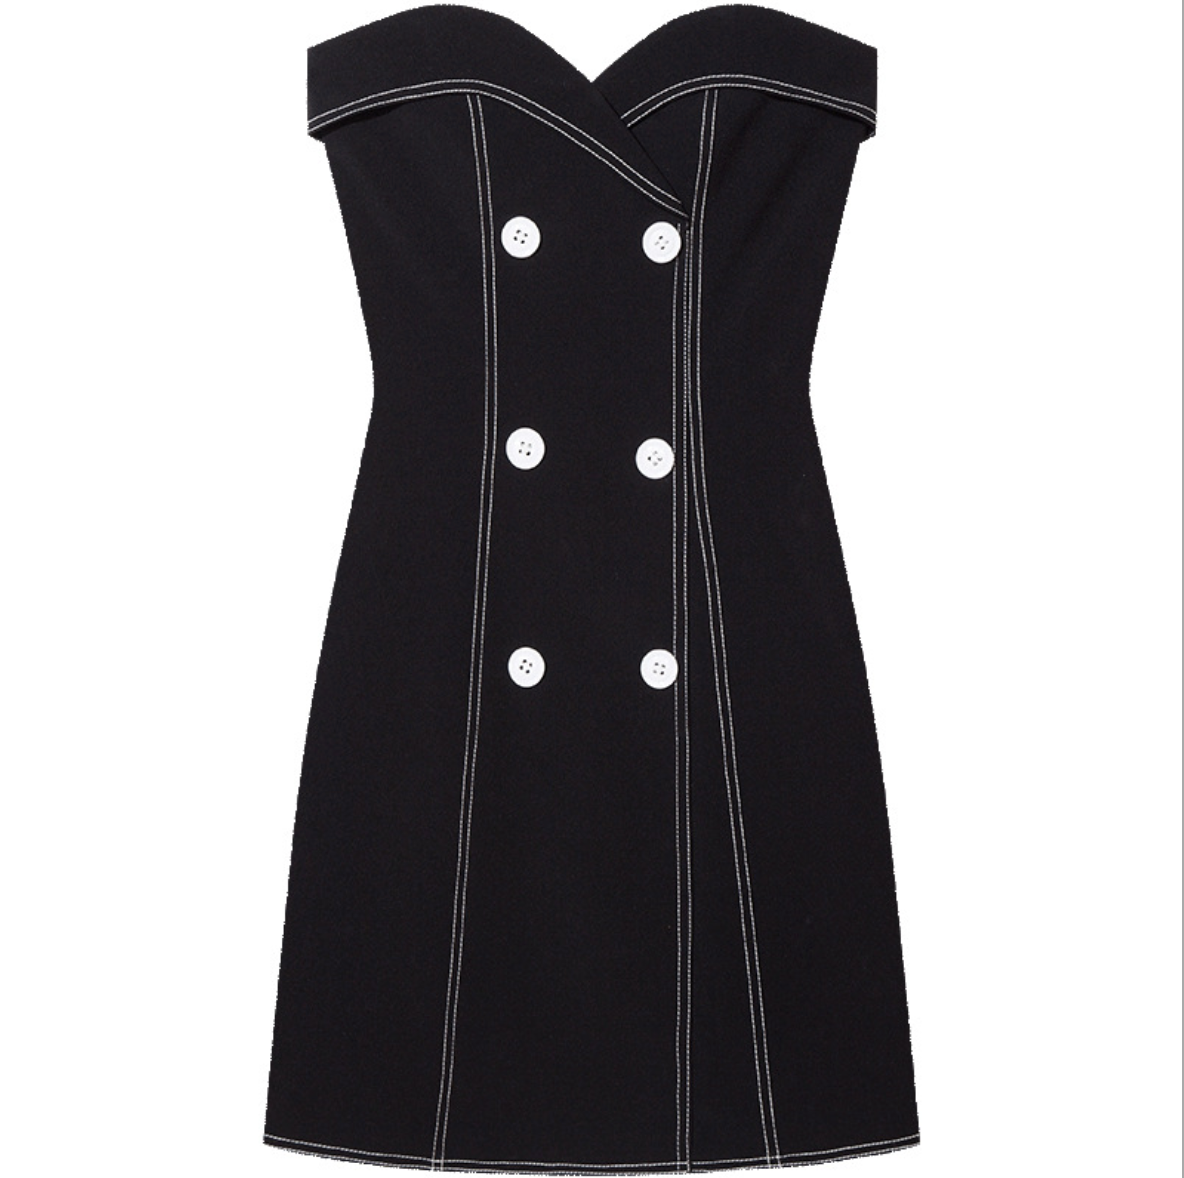 Sexy Black Strapless Button Up Detailing Two Tone Dress